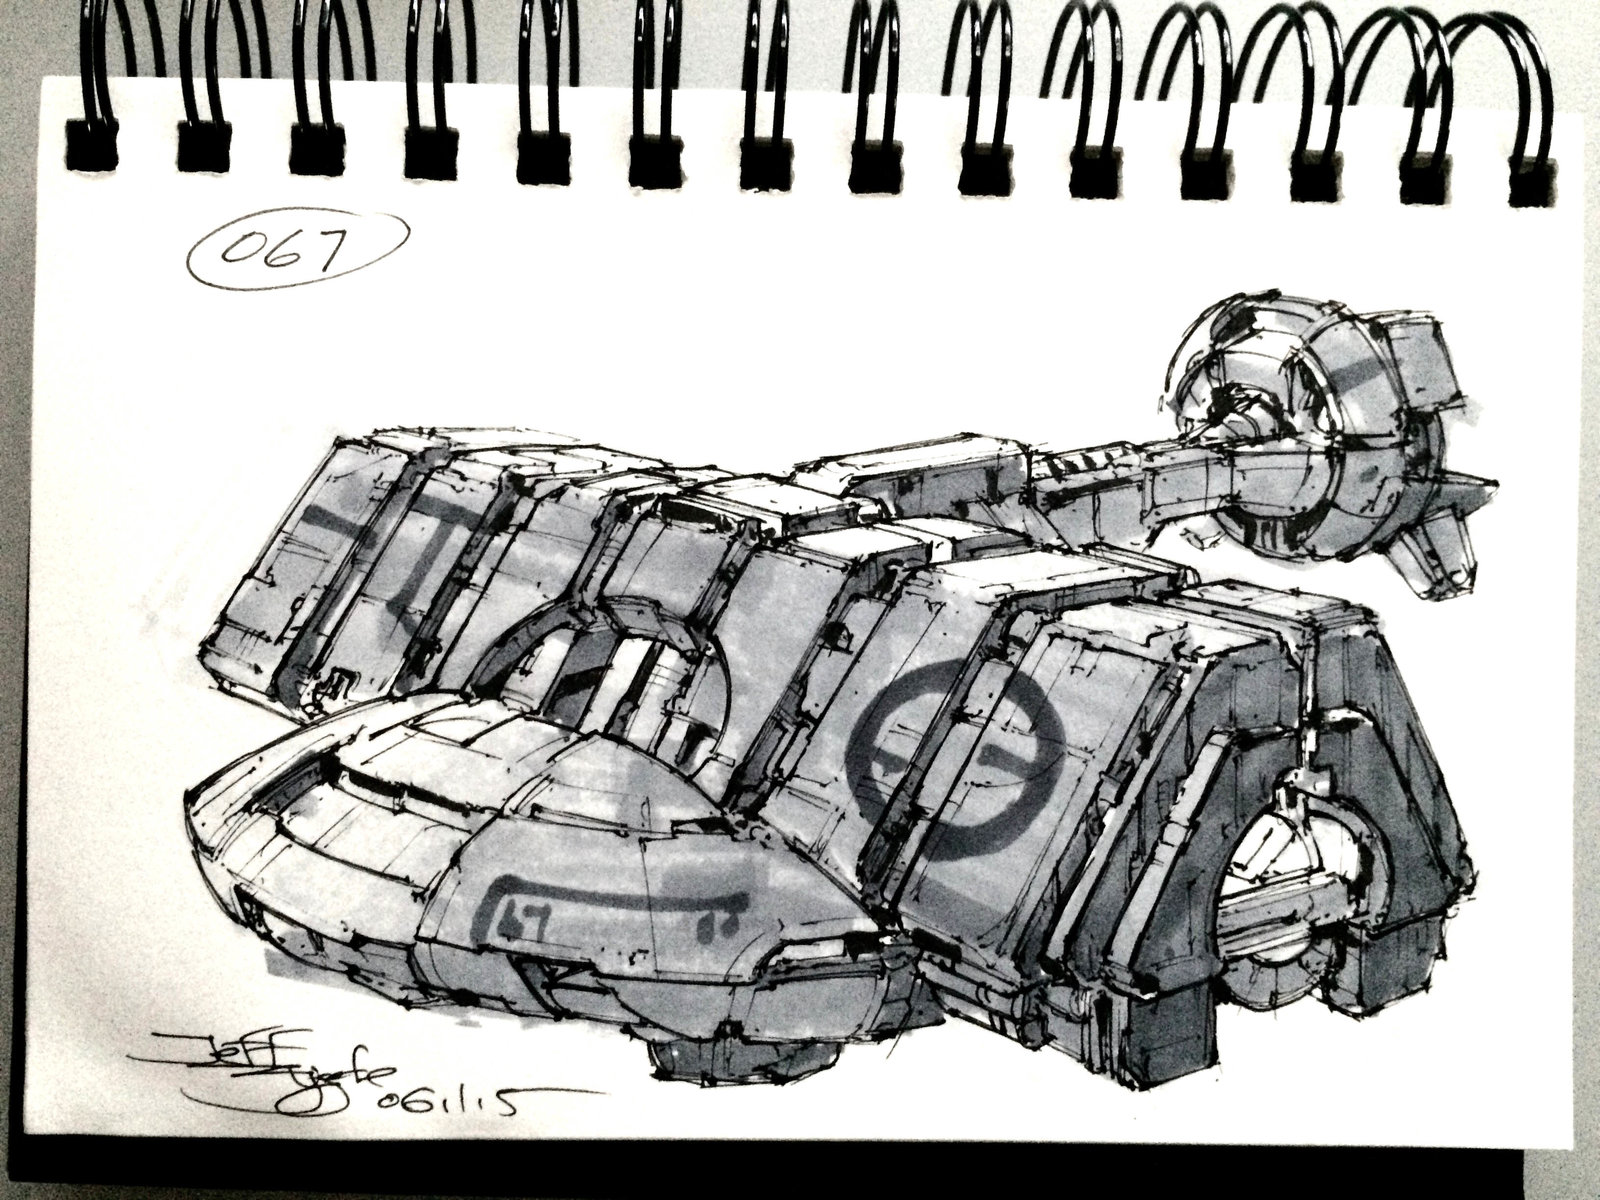 SpaceshipADay 067